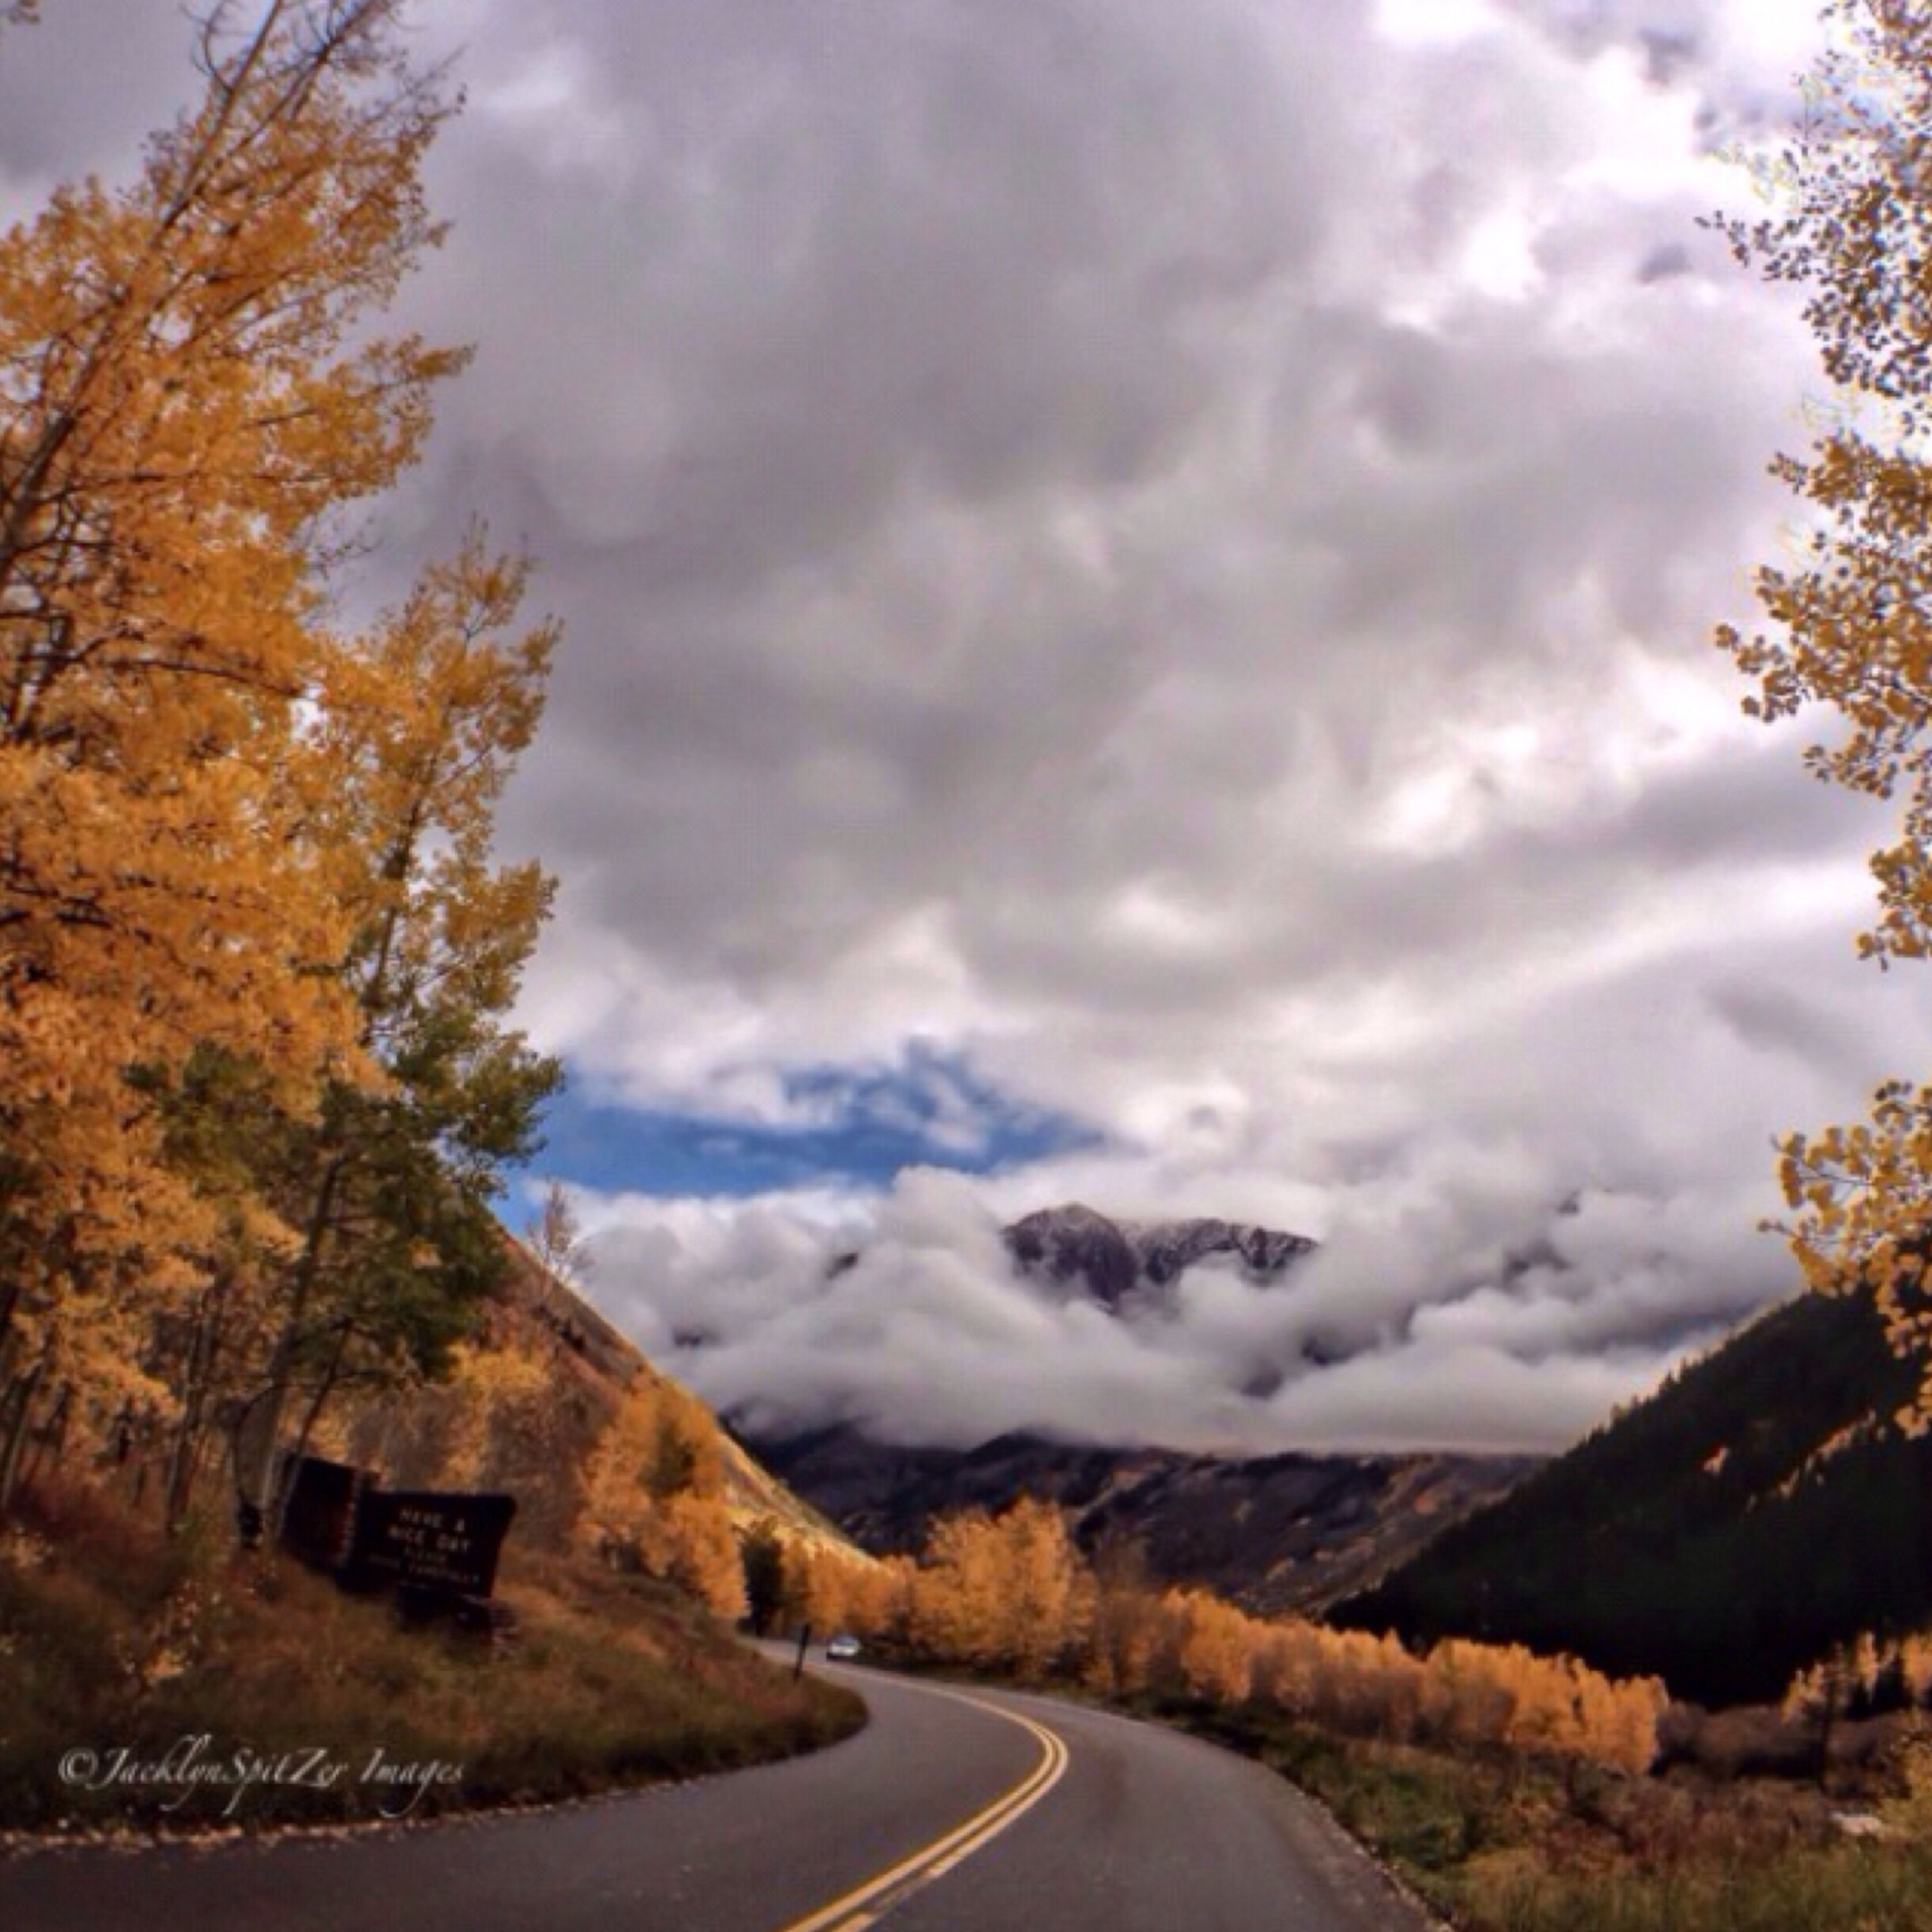 the way forward, road, sky, transportation, cloud - sky, country road, diminishing perspective, tree, cloudy, road marking, vanishing point, mountain, empty road, tranquil scene, scenics, tranquility, cloud, landscape, nature, street